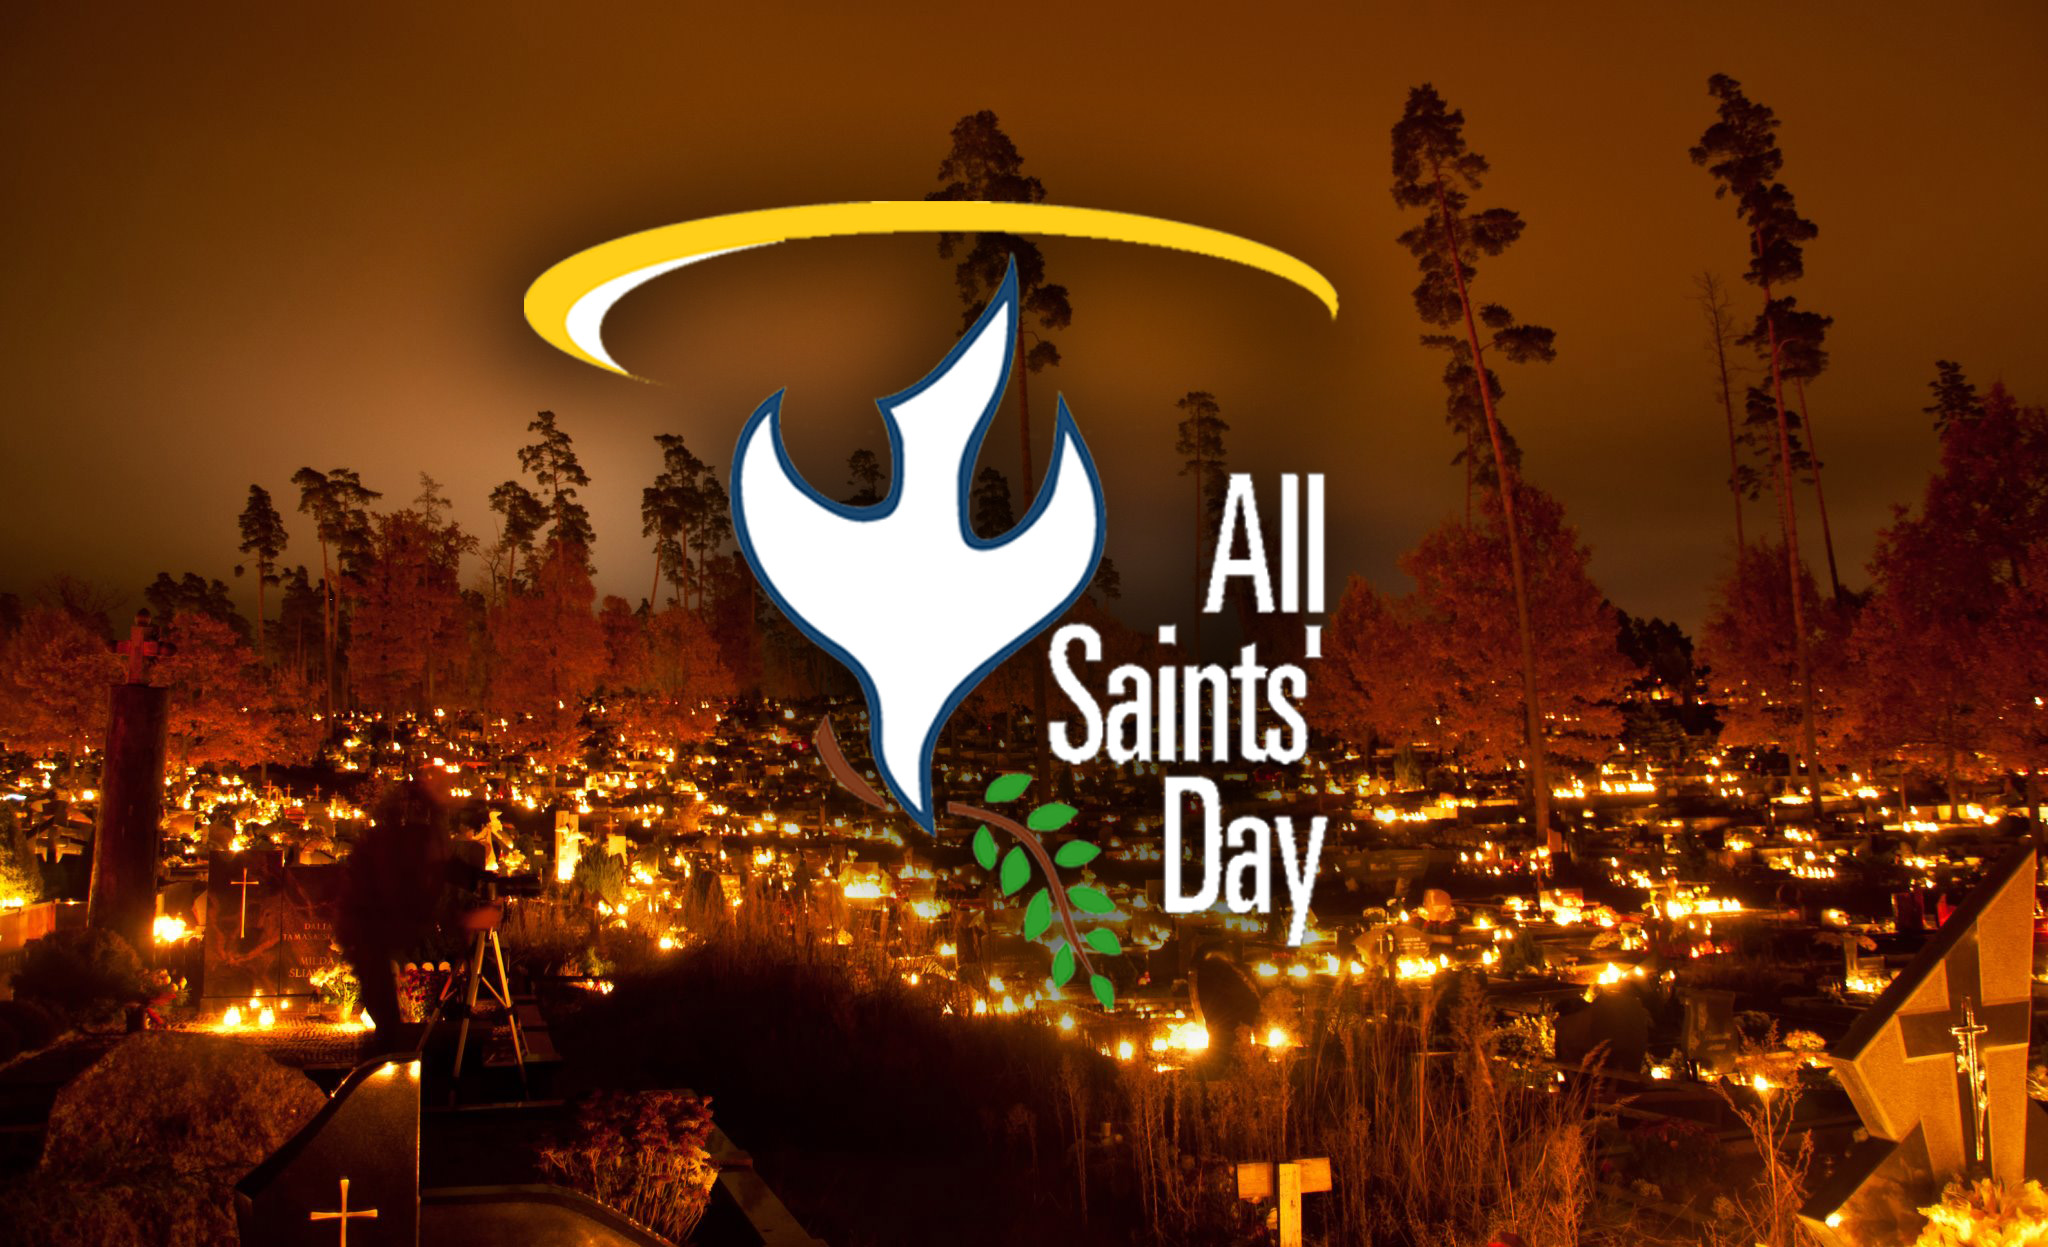 all saints day souls graveyard hd wallpaper society of african